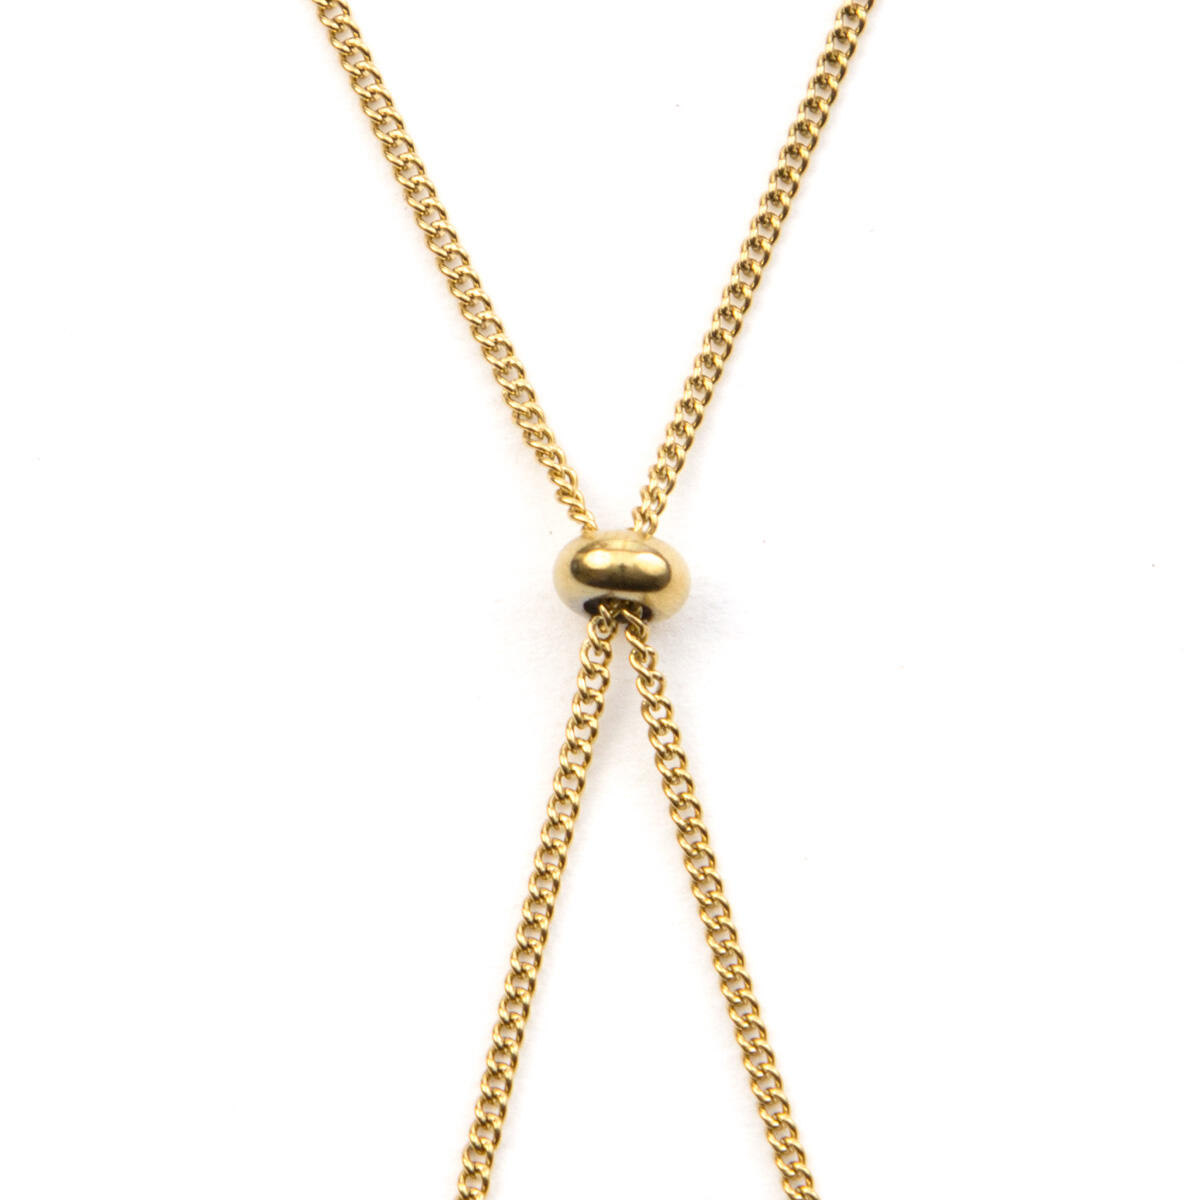 Long Gold Necklaces for Women - Fashion Dainty Gold Necklace Y Necklaces Adjustable Choker Drop Necklace Circle Bar Lariat Necklaces Simple Necklaces Long Statement Necklace 14k Gold Boho Necklace